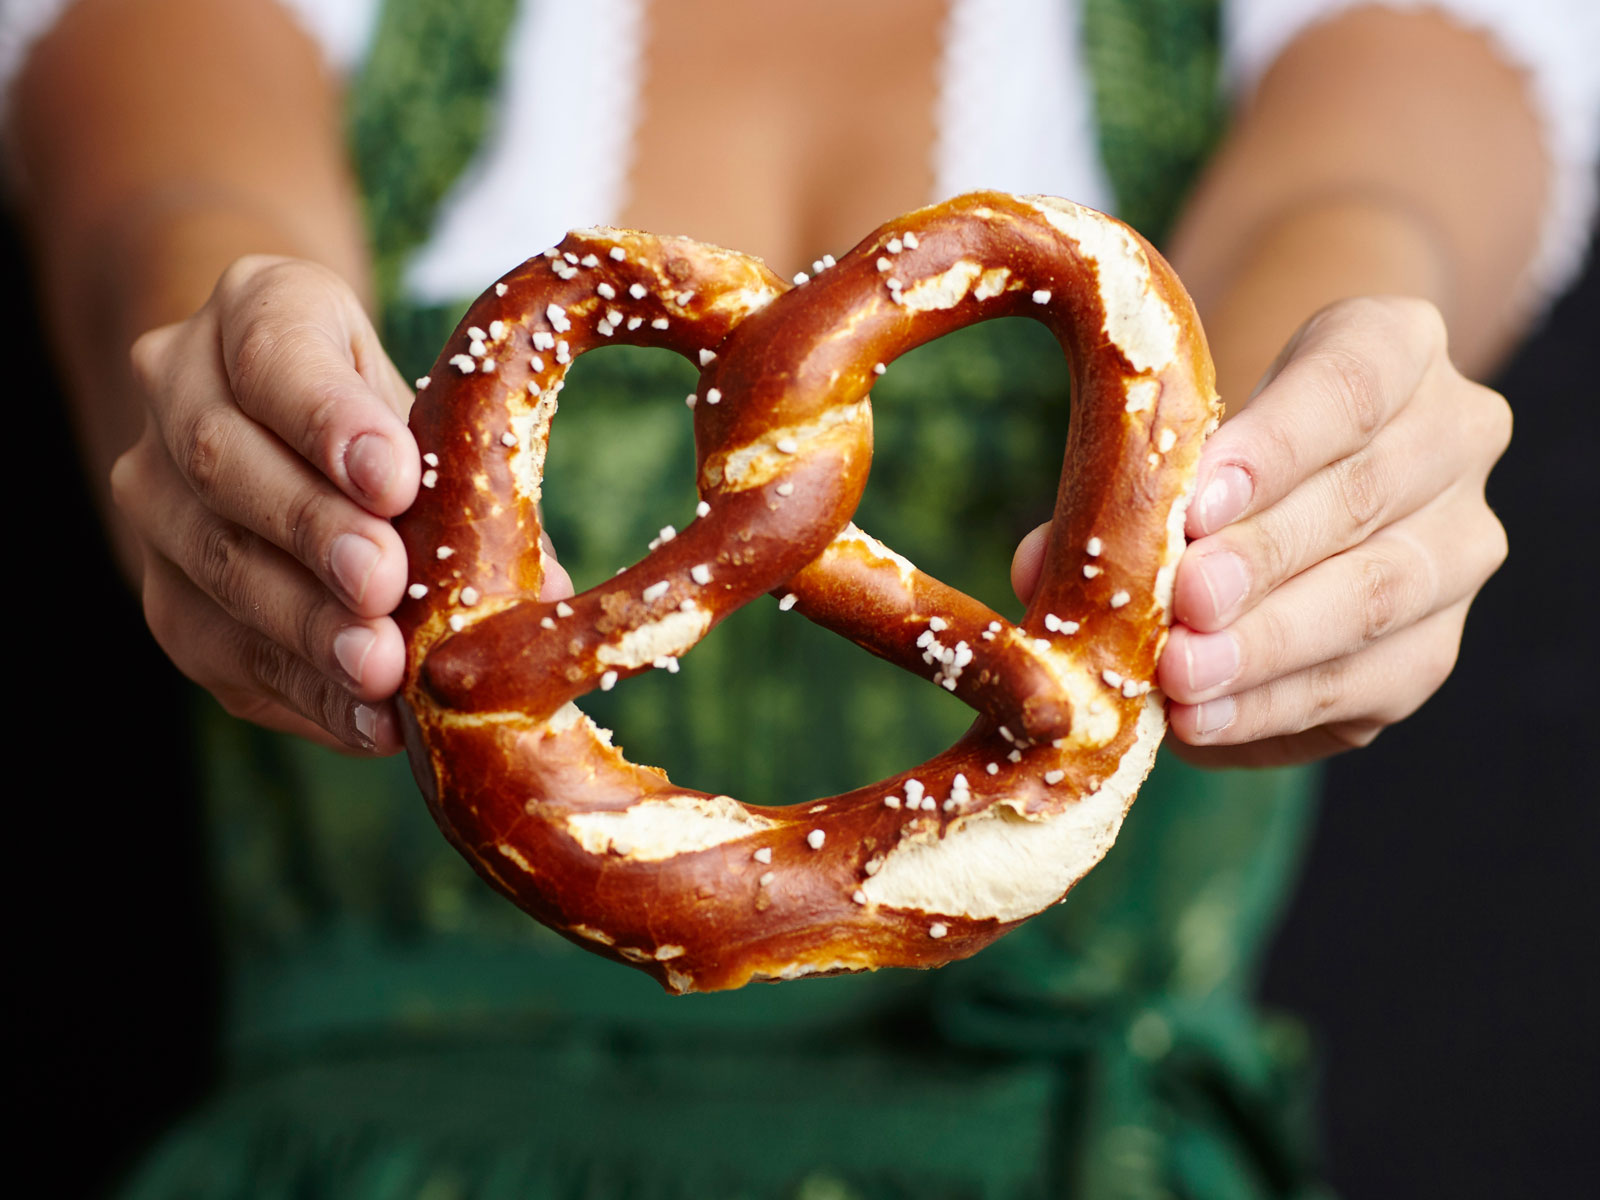 Where to Get a Free Pretzel on National Pretzel Day